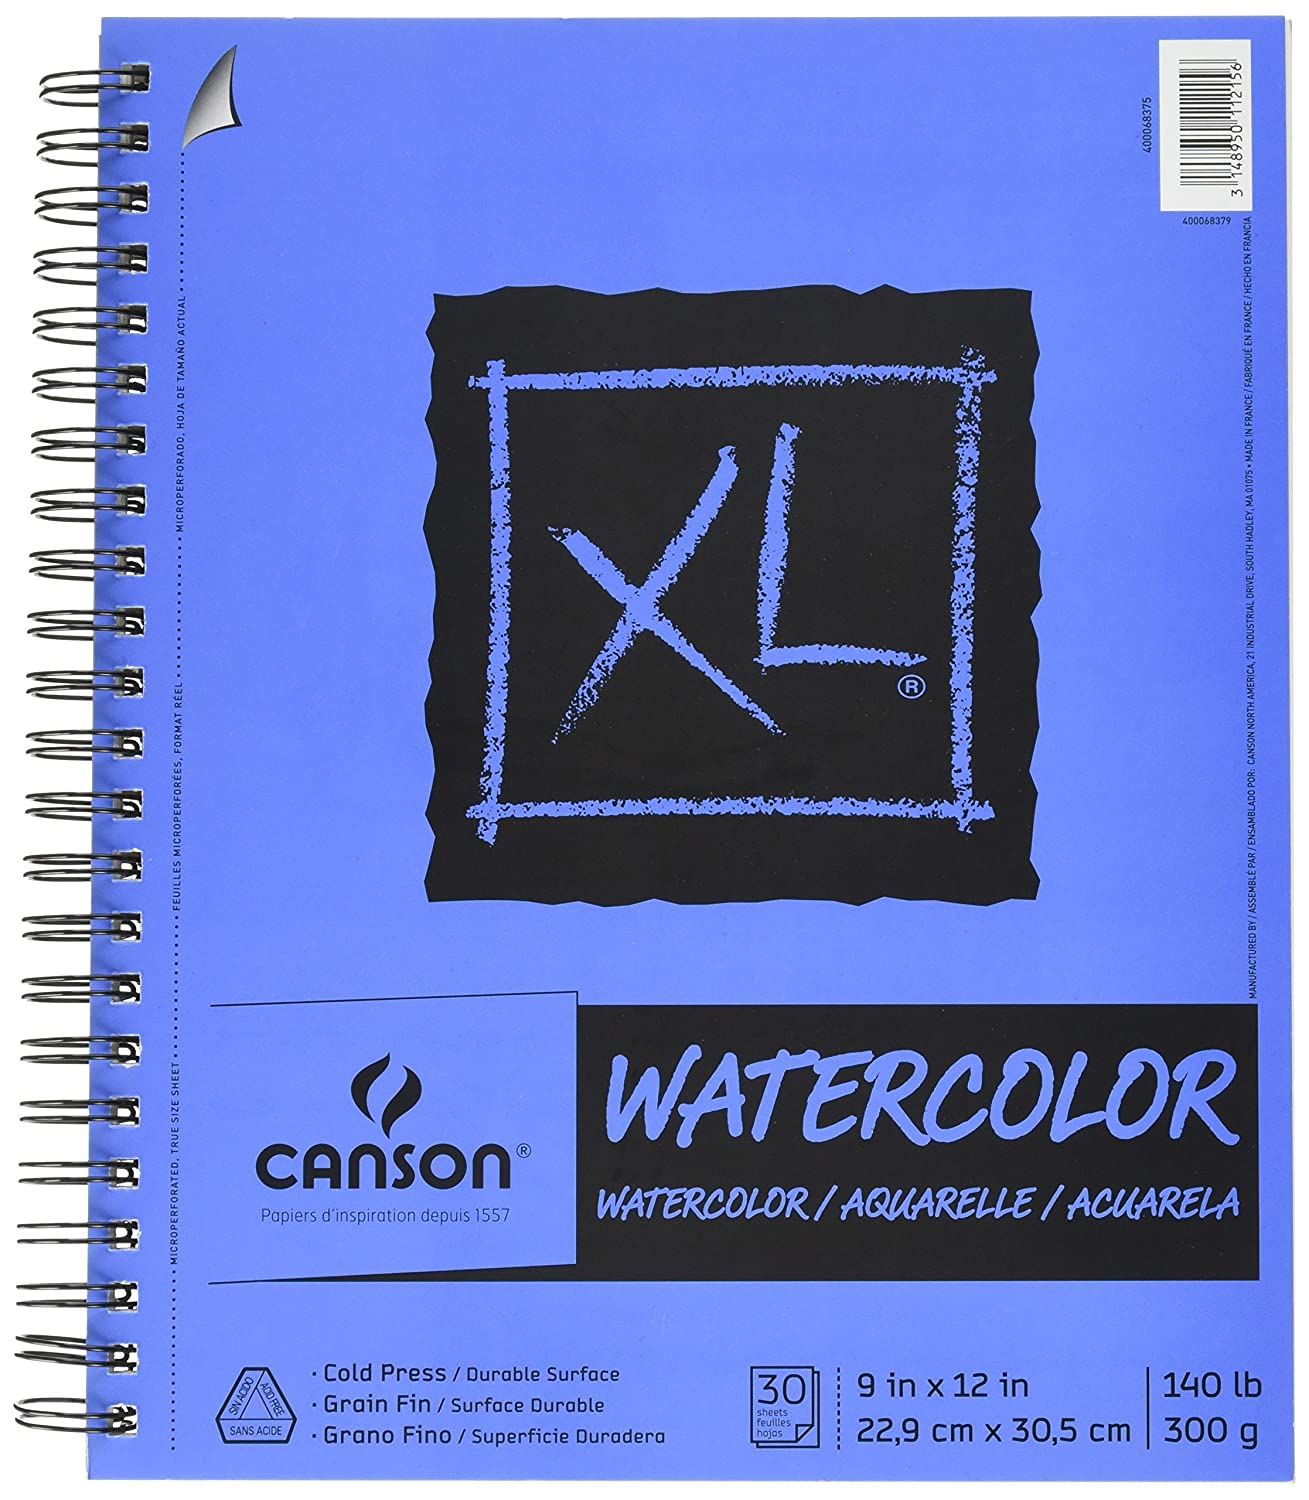 Canson XL Series Watercolor Textured Paper Pad for Paint, Pencil, Ink, Charcoal, Pastel, and Acrylic, Fold Over, 140 Pound, 18 x 24 Inch, 30 Sheets Canson Inc. 100510944